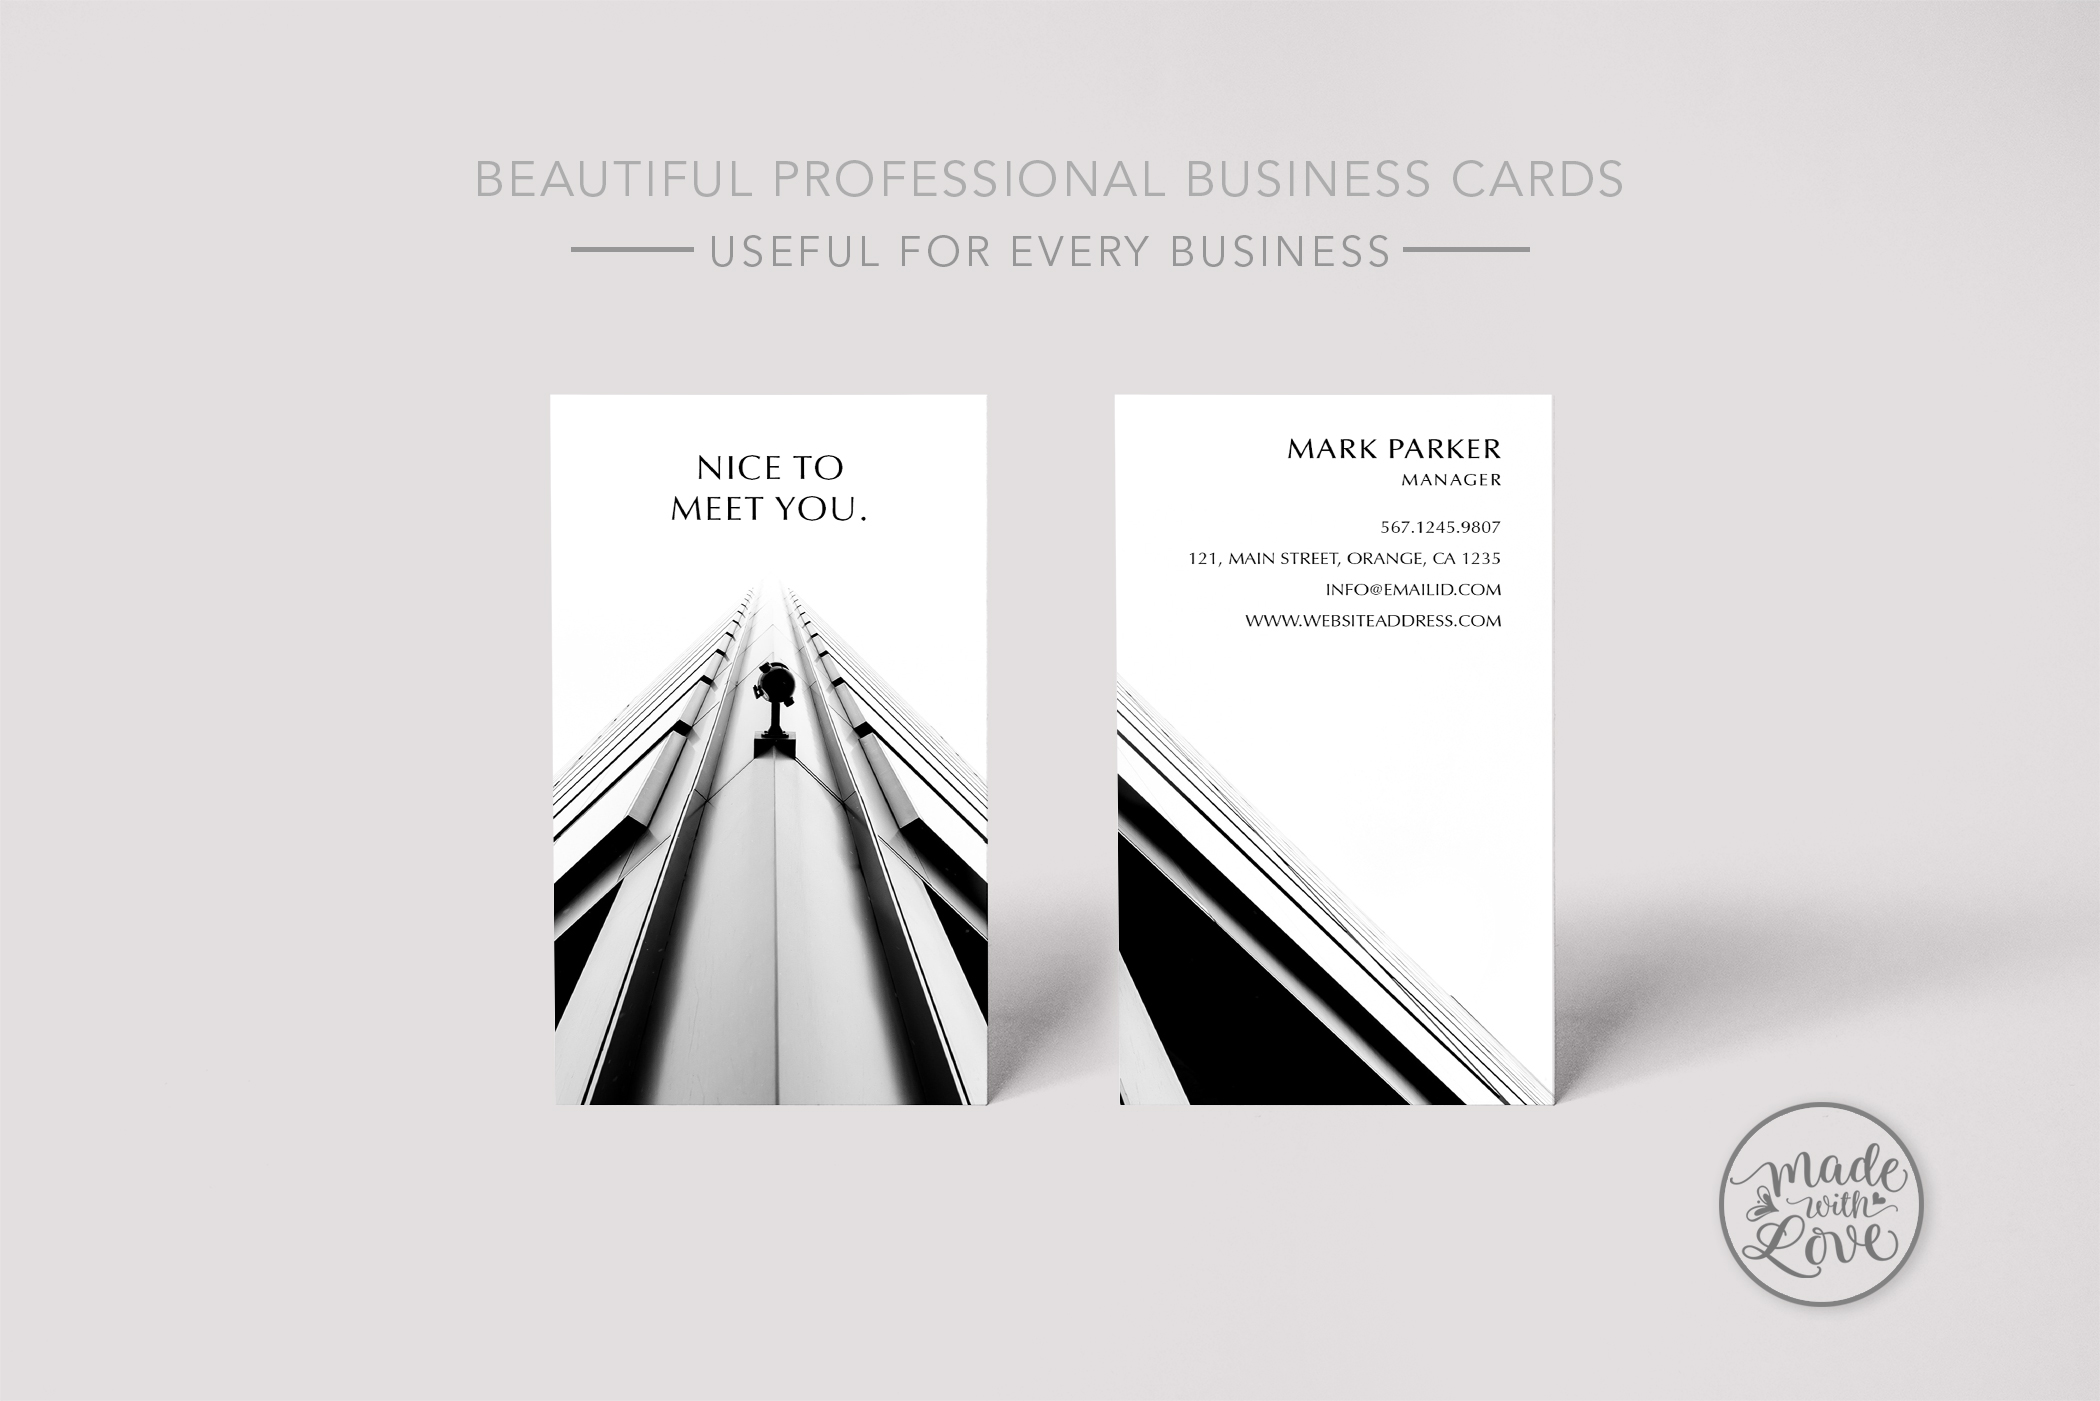 Beautiful Professional Business Card example image 1